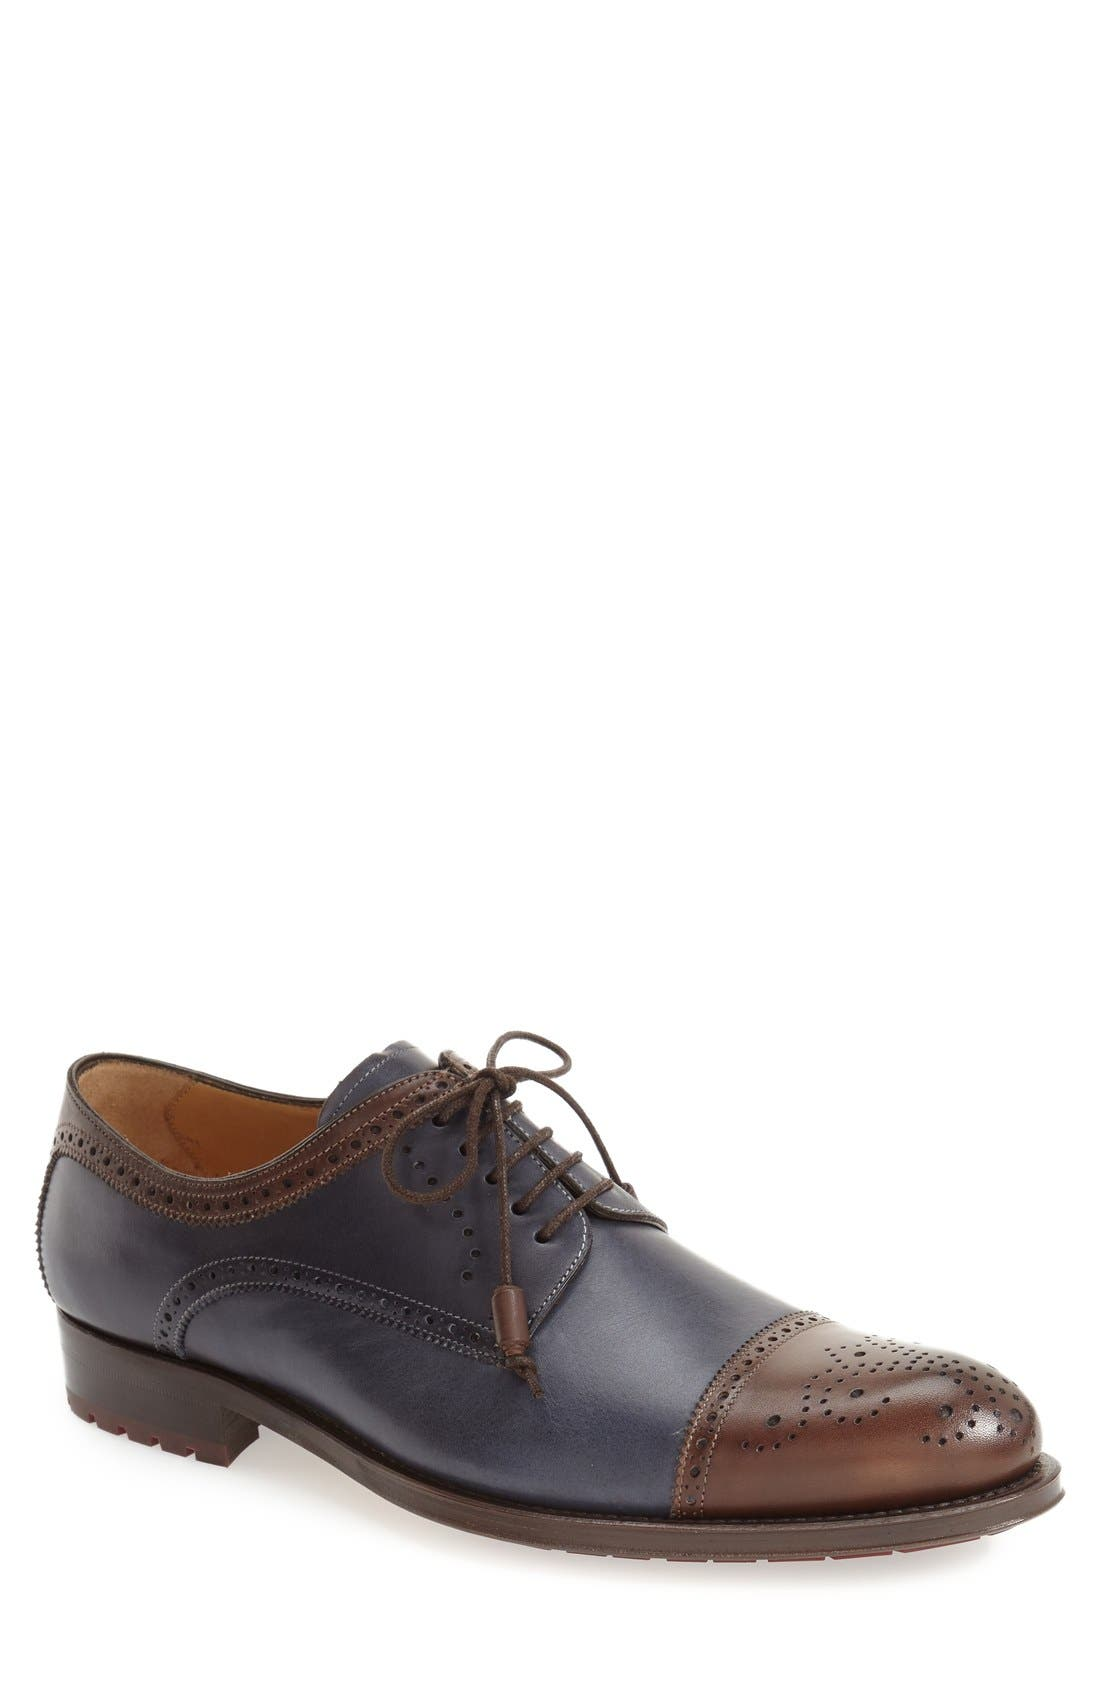 'Carlino' Cap Toe Oxford,                             Main thumbnail 1, color,                             BROWN/ BLUE